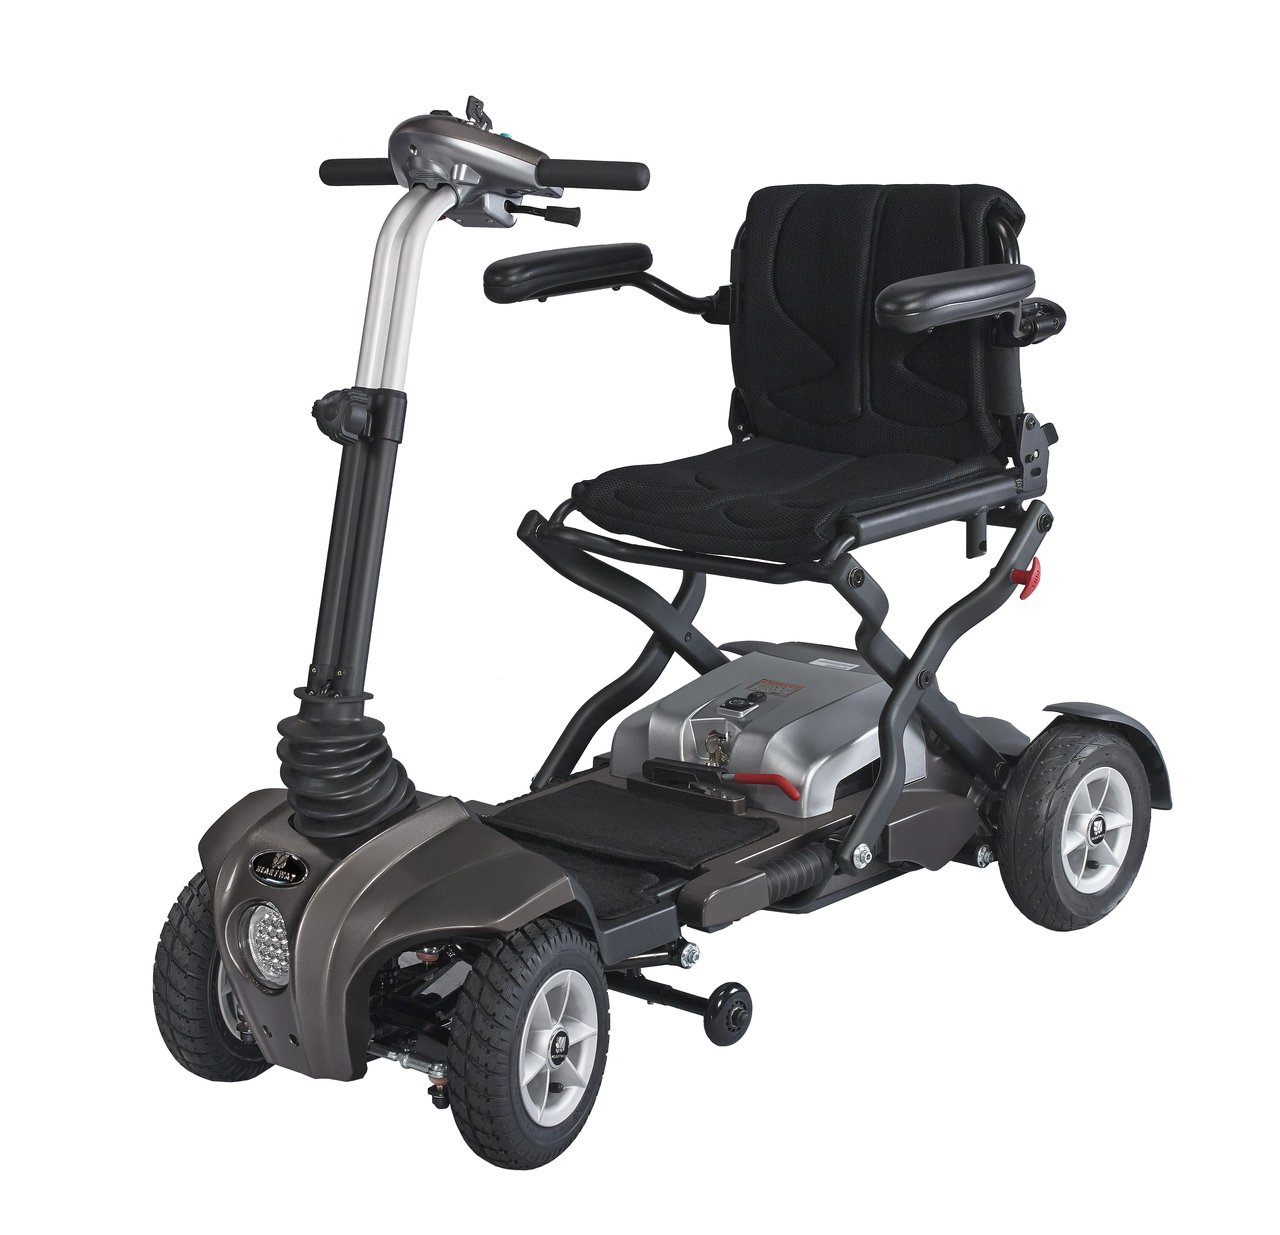 Amazon.com: Passport-S19 Power Chair with 24v 11.5Ah Lithium ...